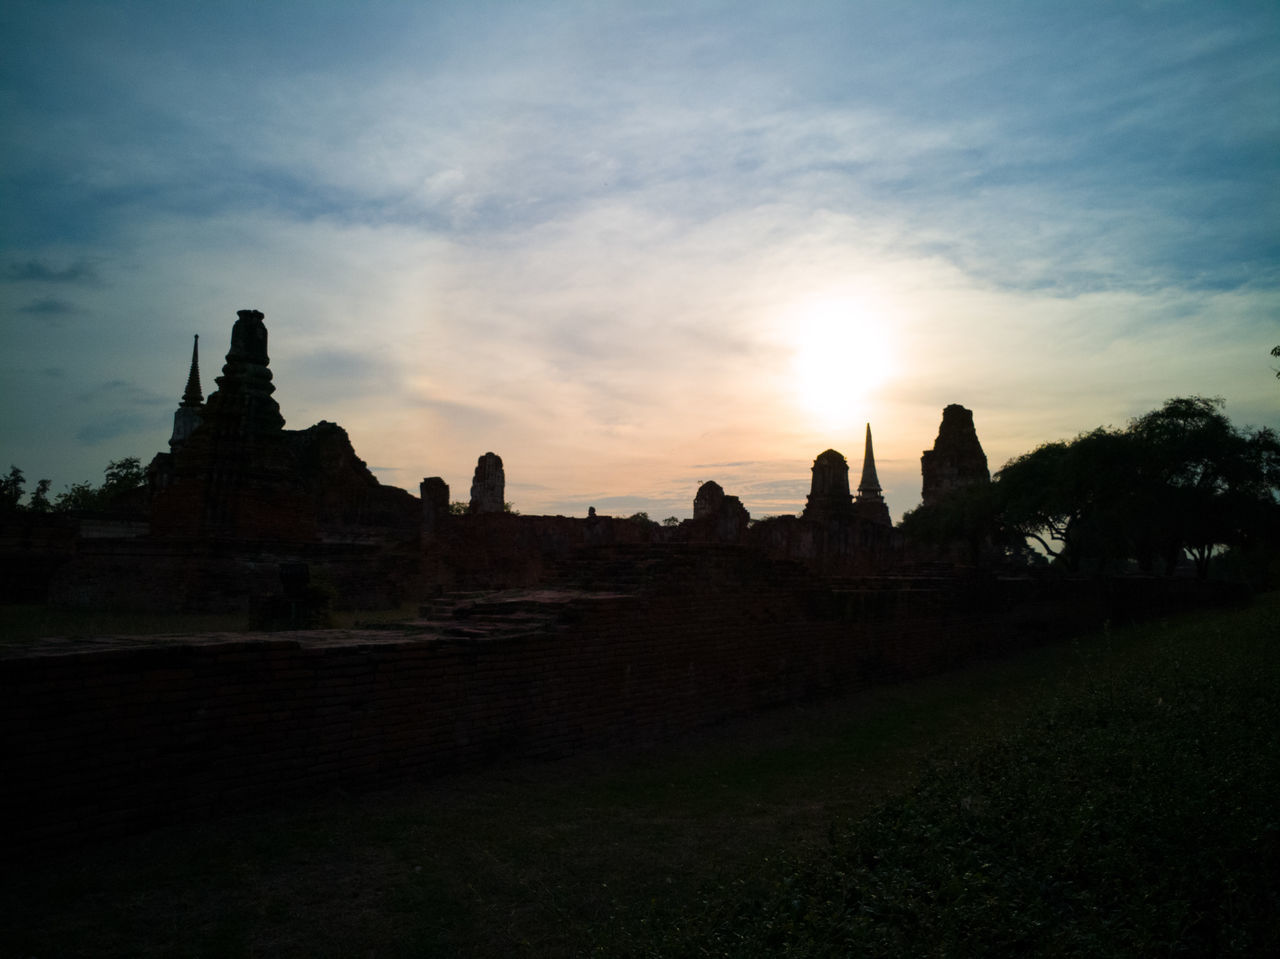 Temple in Ayutthaya, Thailand Ayutthaya Outdoors Sky Sunset Temple Thailand ThailandTemple Thailandtravel Travel Destinations